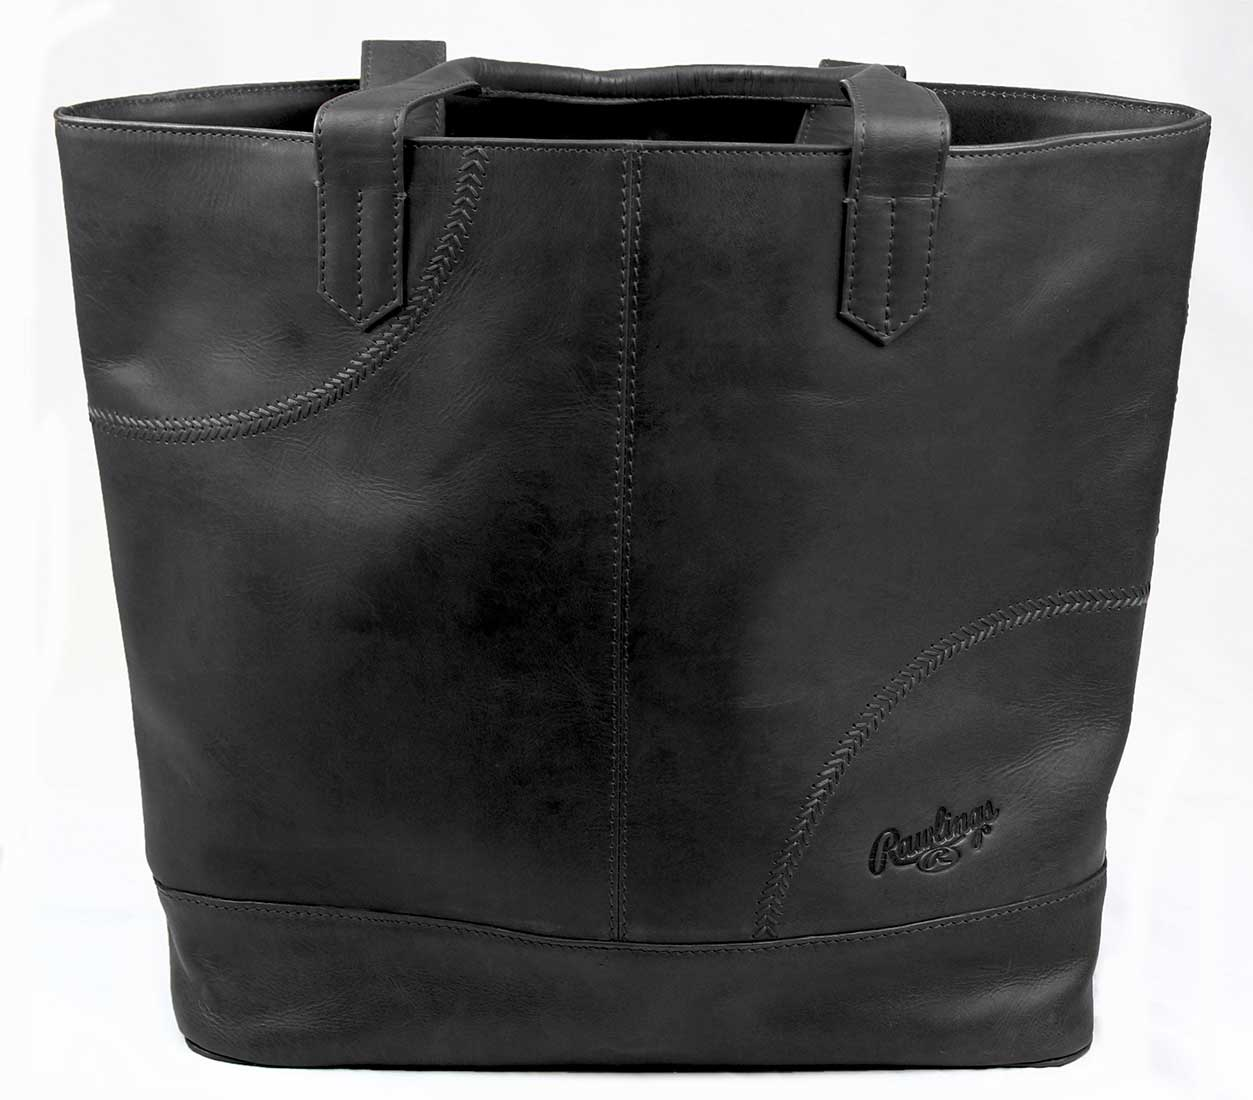 Rawlings - RB60001-001 - Rawlings Vintage Leather Womens Large Tote Bag